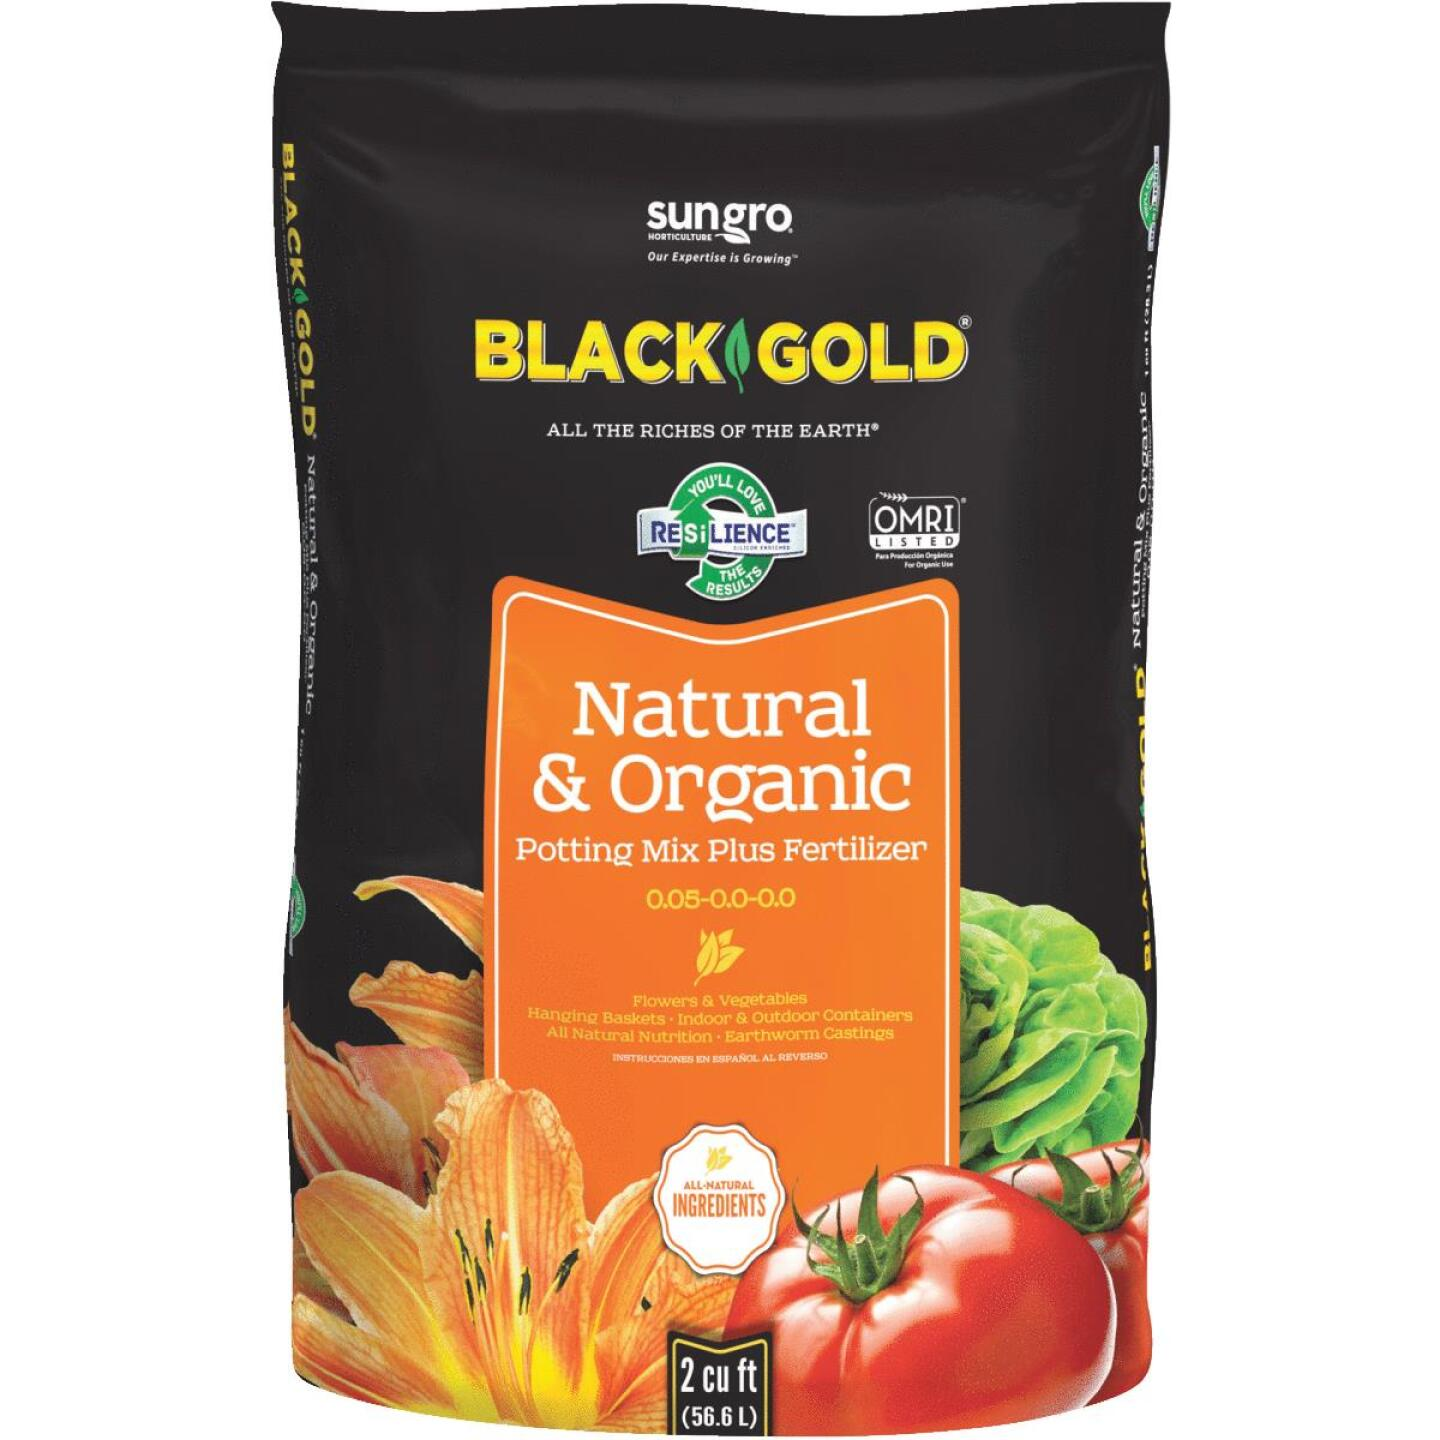 Black Gold 2 Cu. Ft. 47-1/2 Lb. All Purpose Natural & Organic Potting Soil Image 1